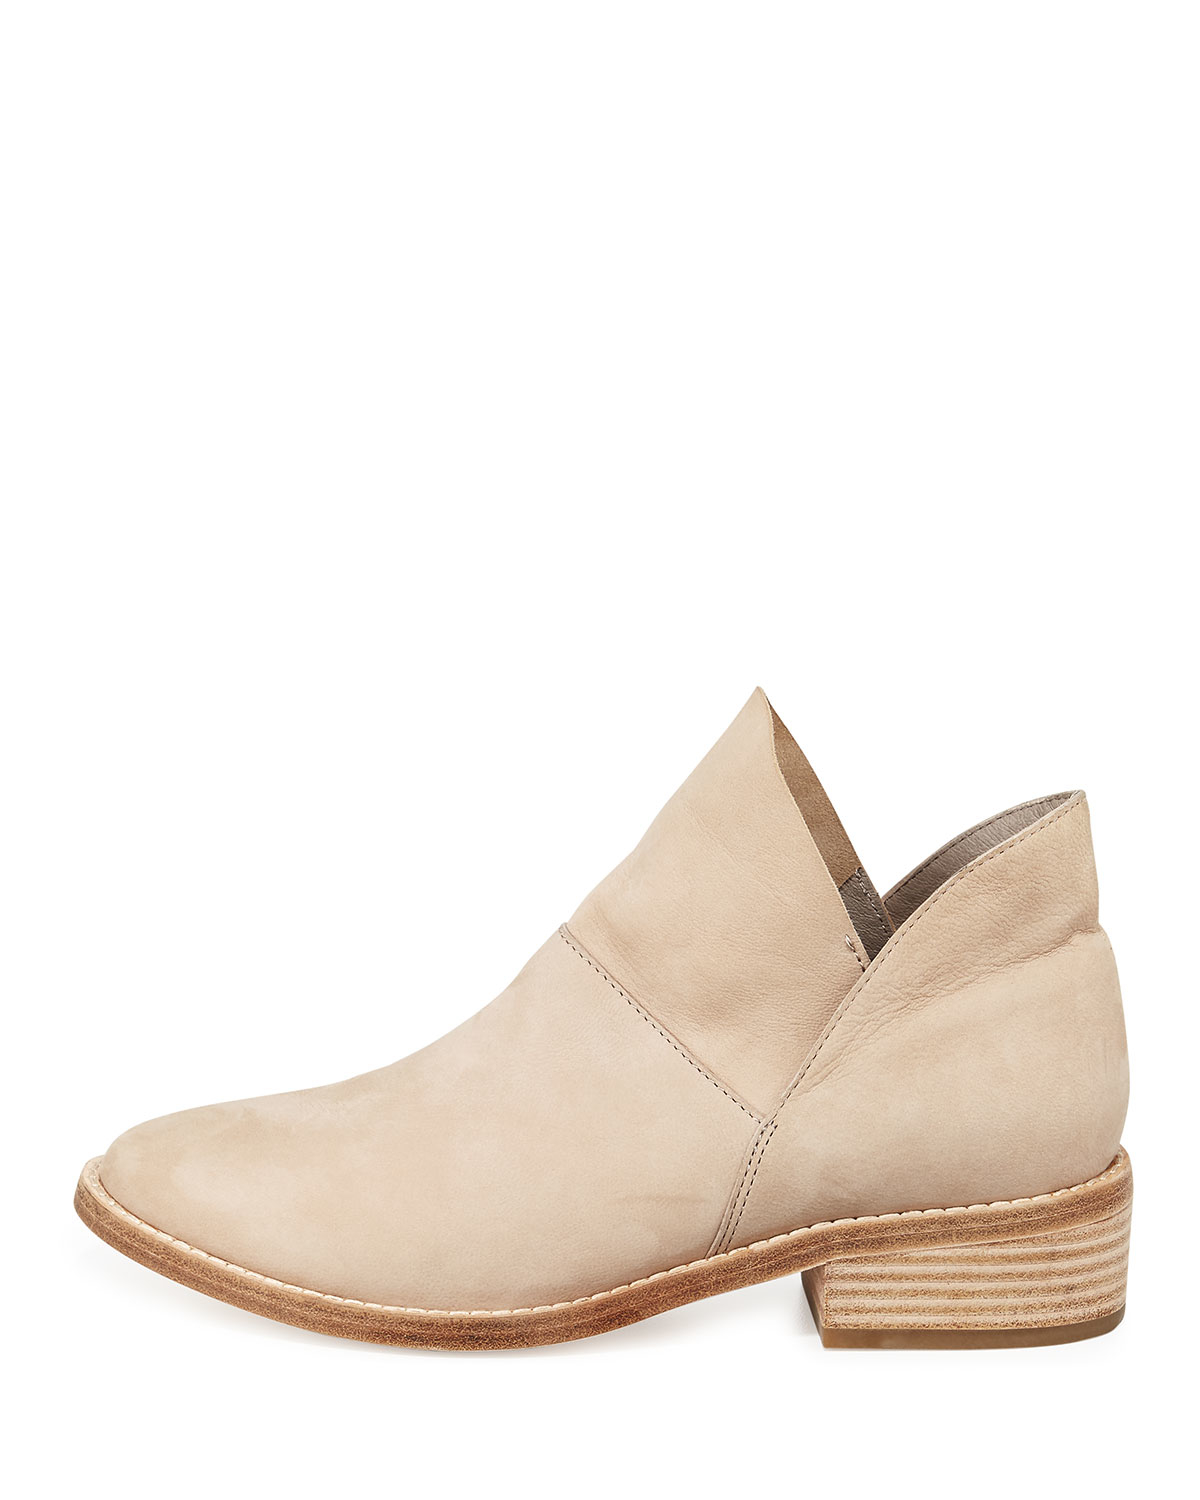 d352a154b646 Lyst - Eileen Fisher Leaf Nubuck Boots in Natural